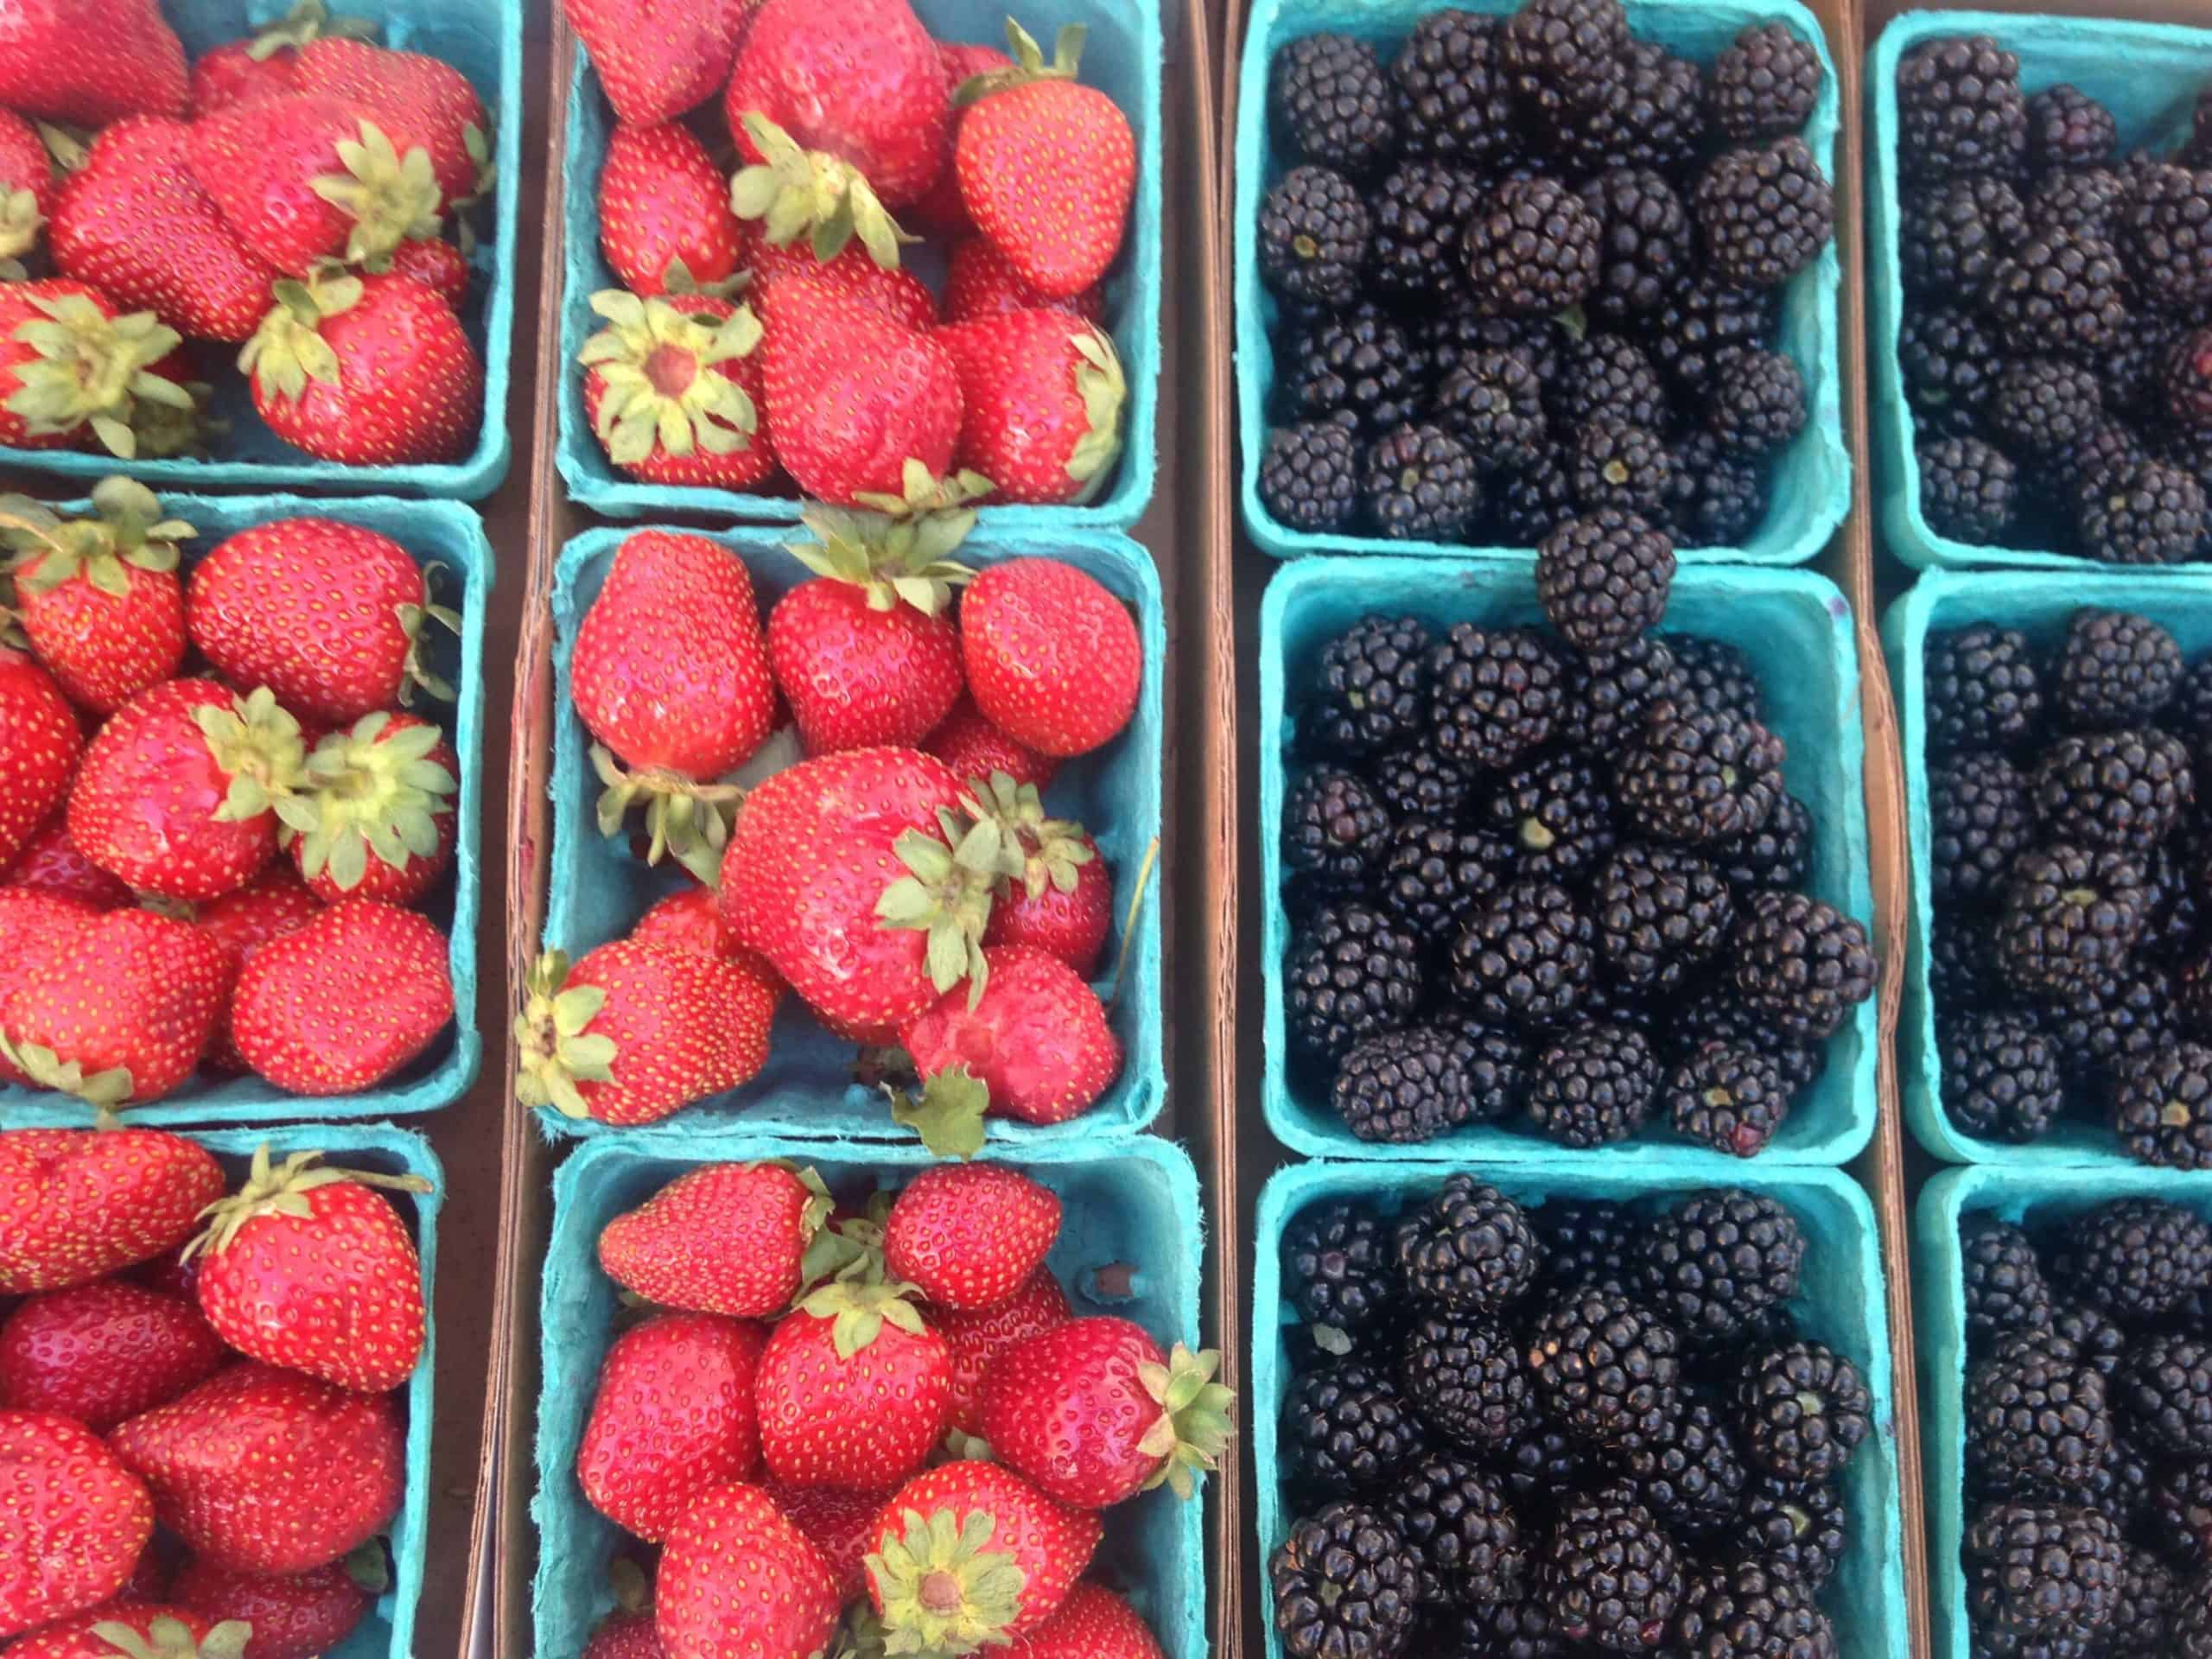 assorted berries sort through to go further with food